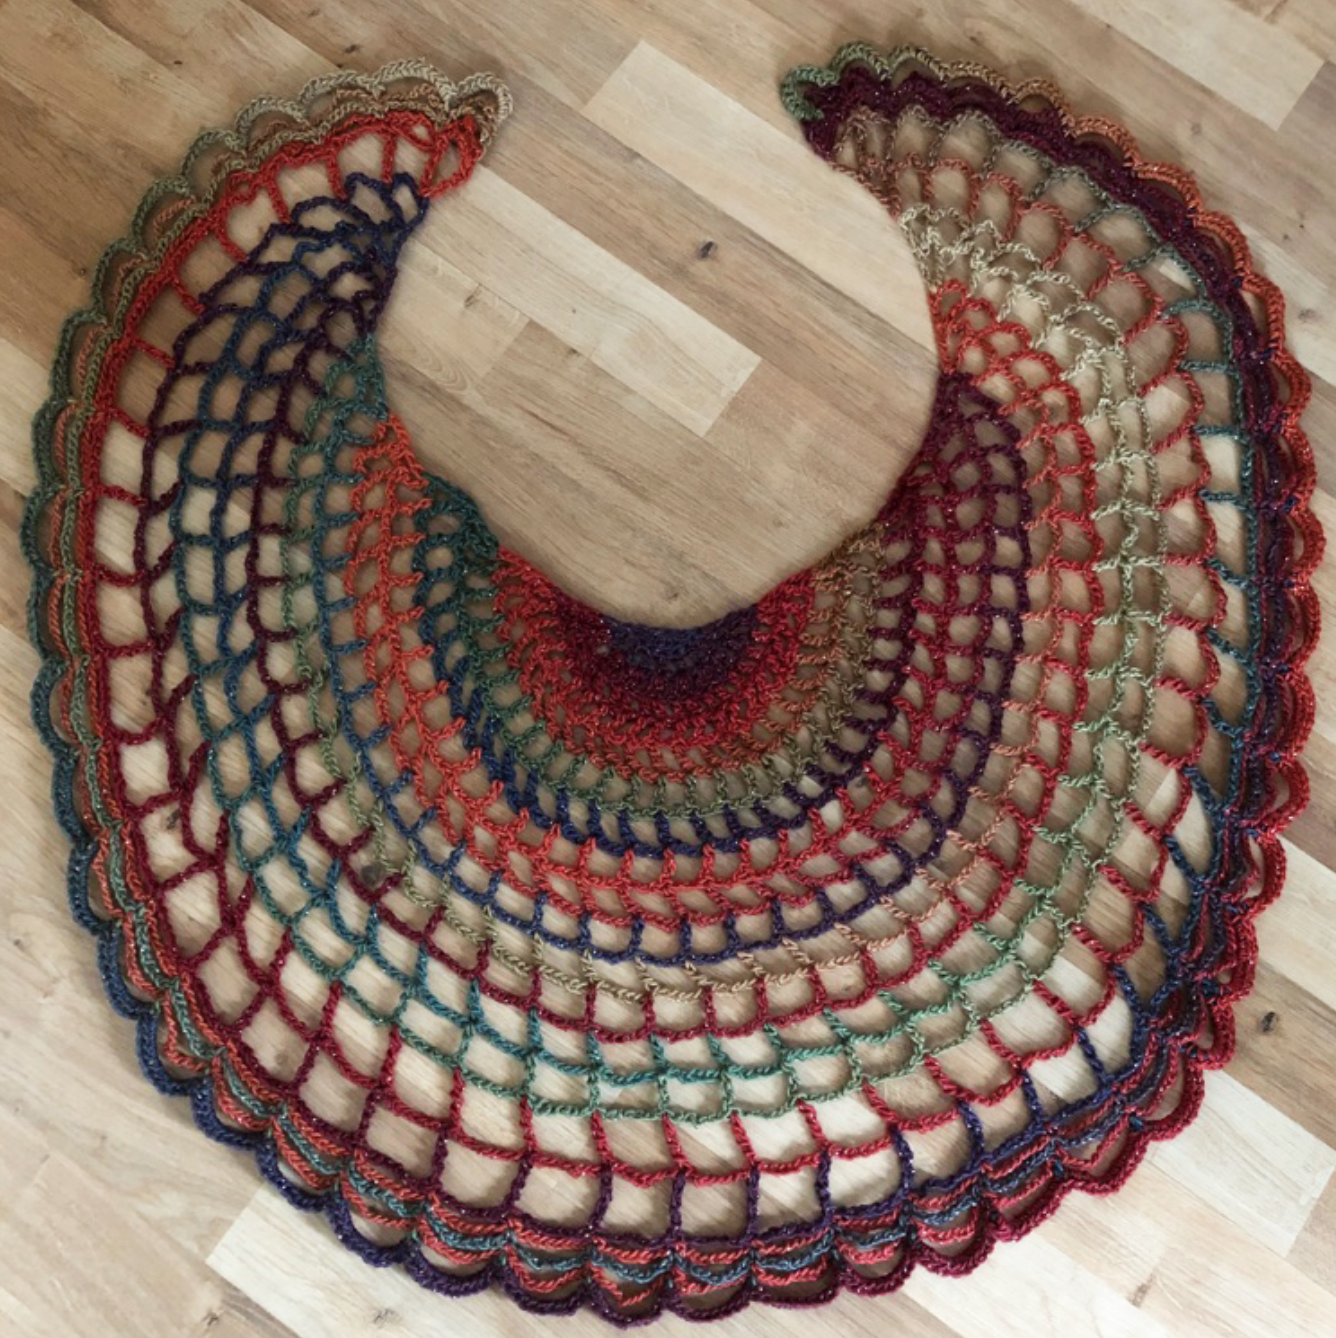 New Pattern Release - Swift Spider Scarf